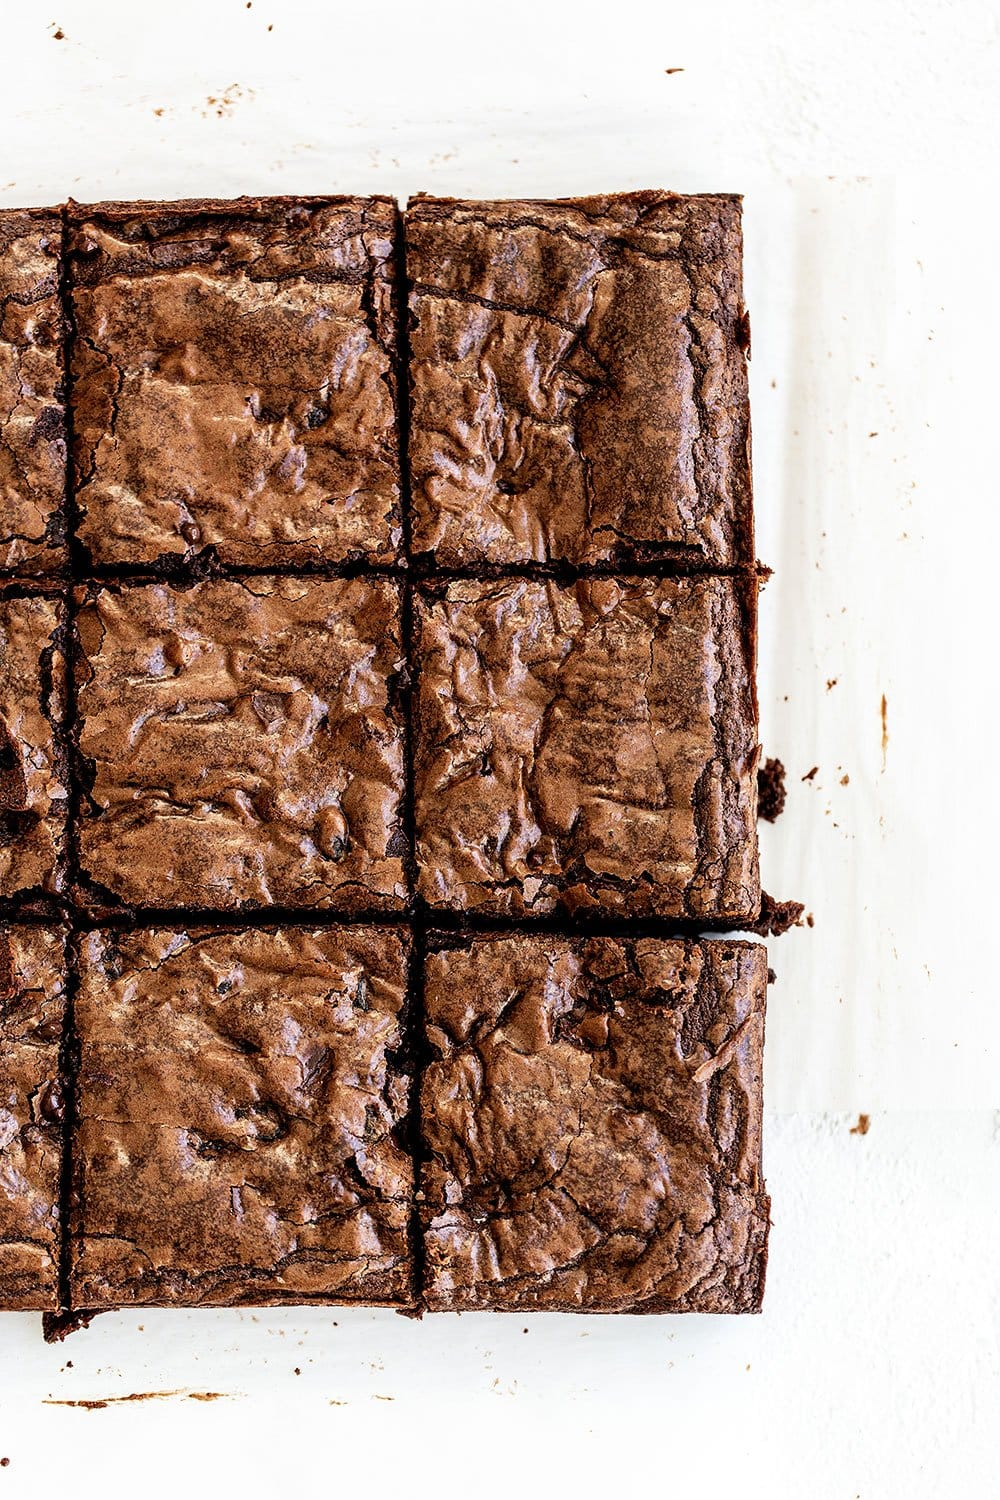 Brownies cut into squares with crinkly glossy tops